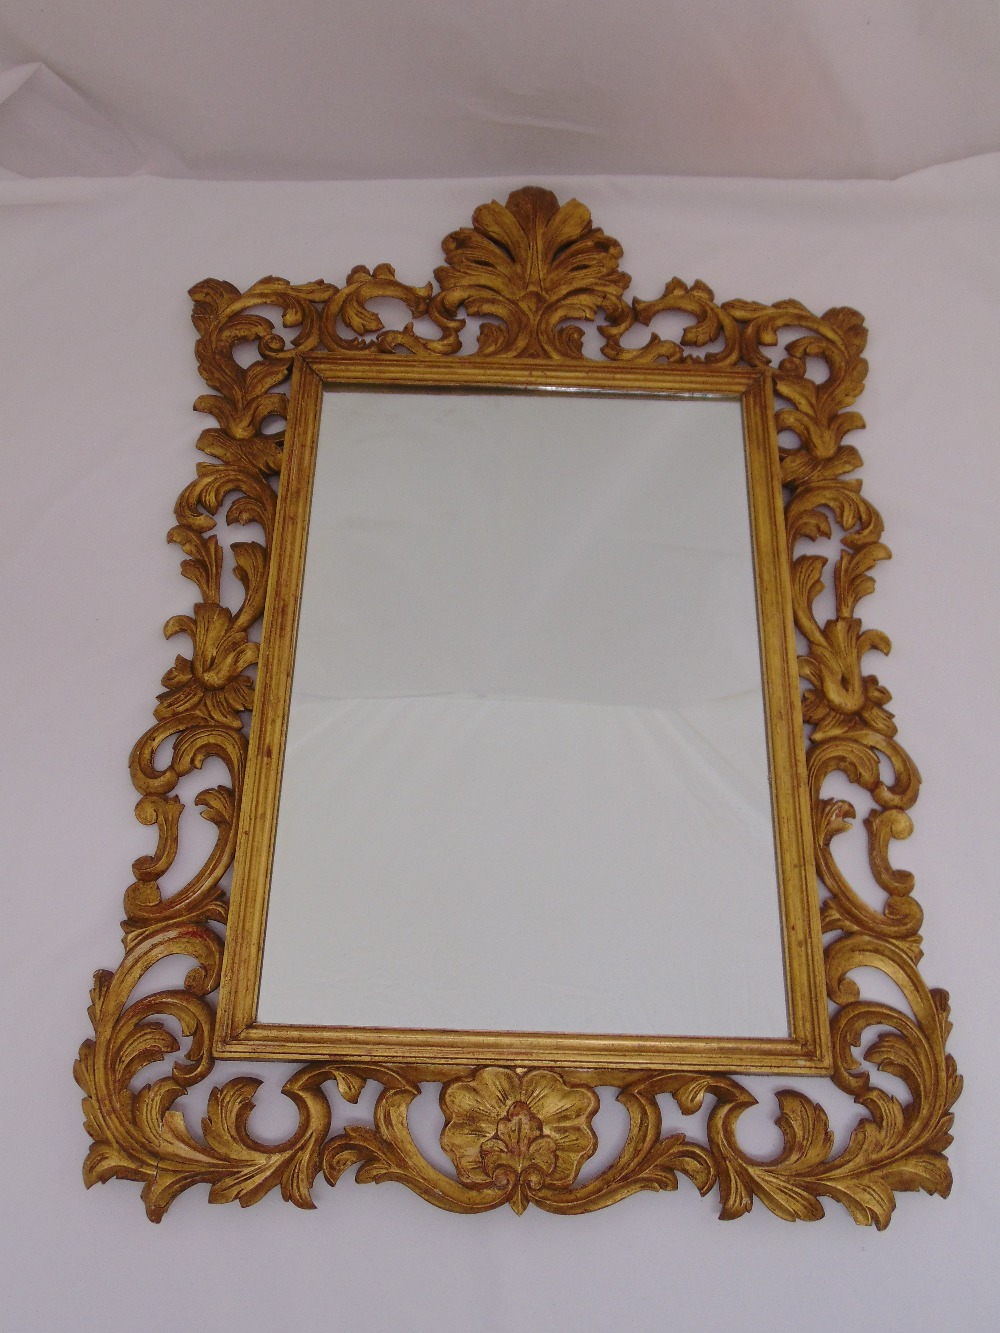 Lot 23 - A gilded wooden rectangular, leaf and shell carved wall mirror in the Rococo style, 100 x 68.5cm